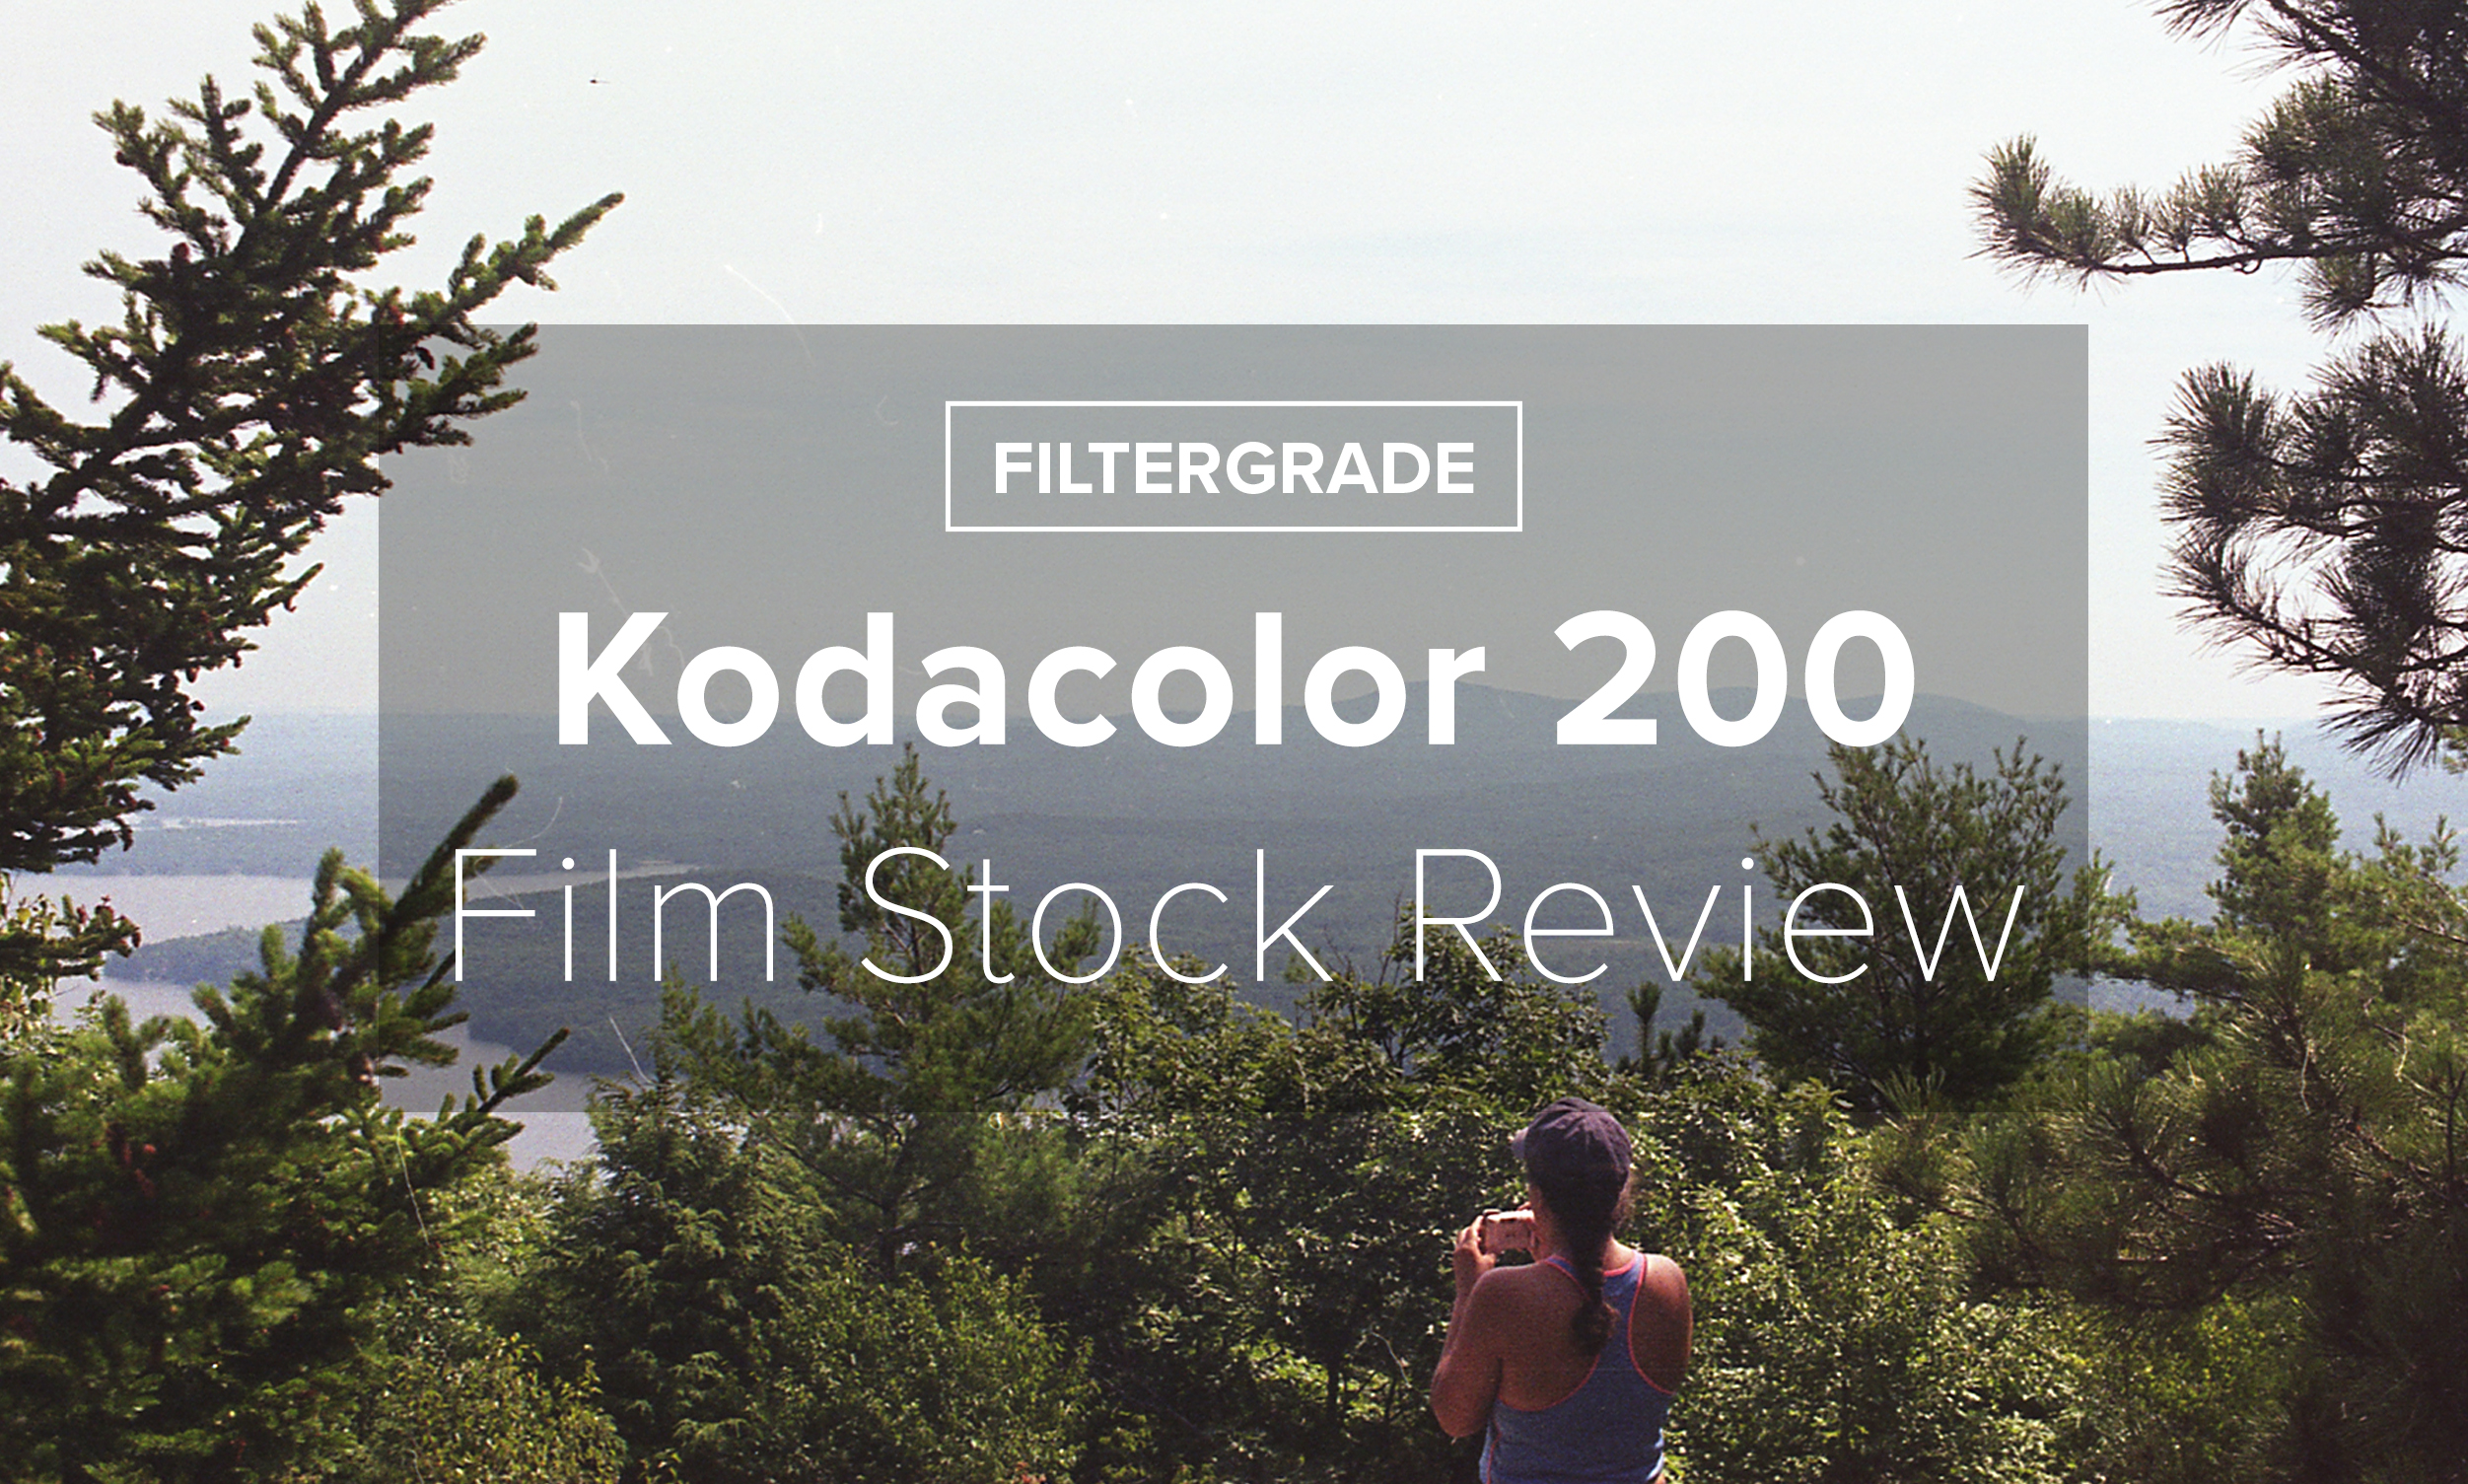 Kodacolor 200 Film Stock Review Feature - FilterGrade